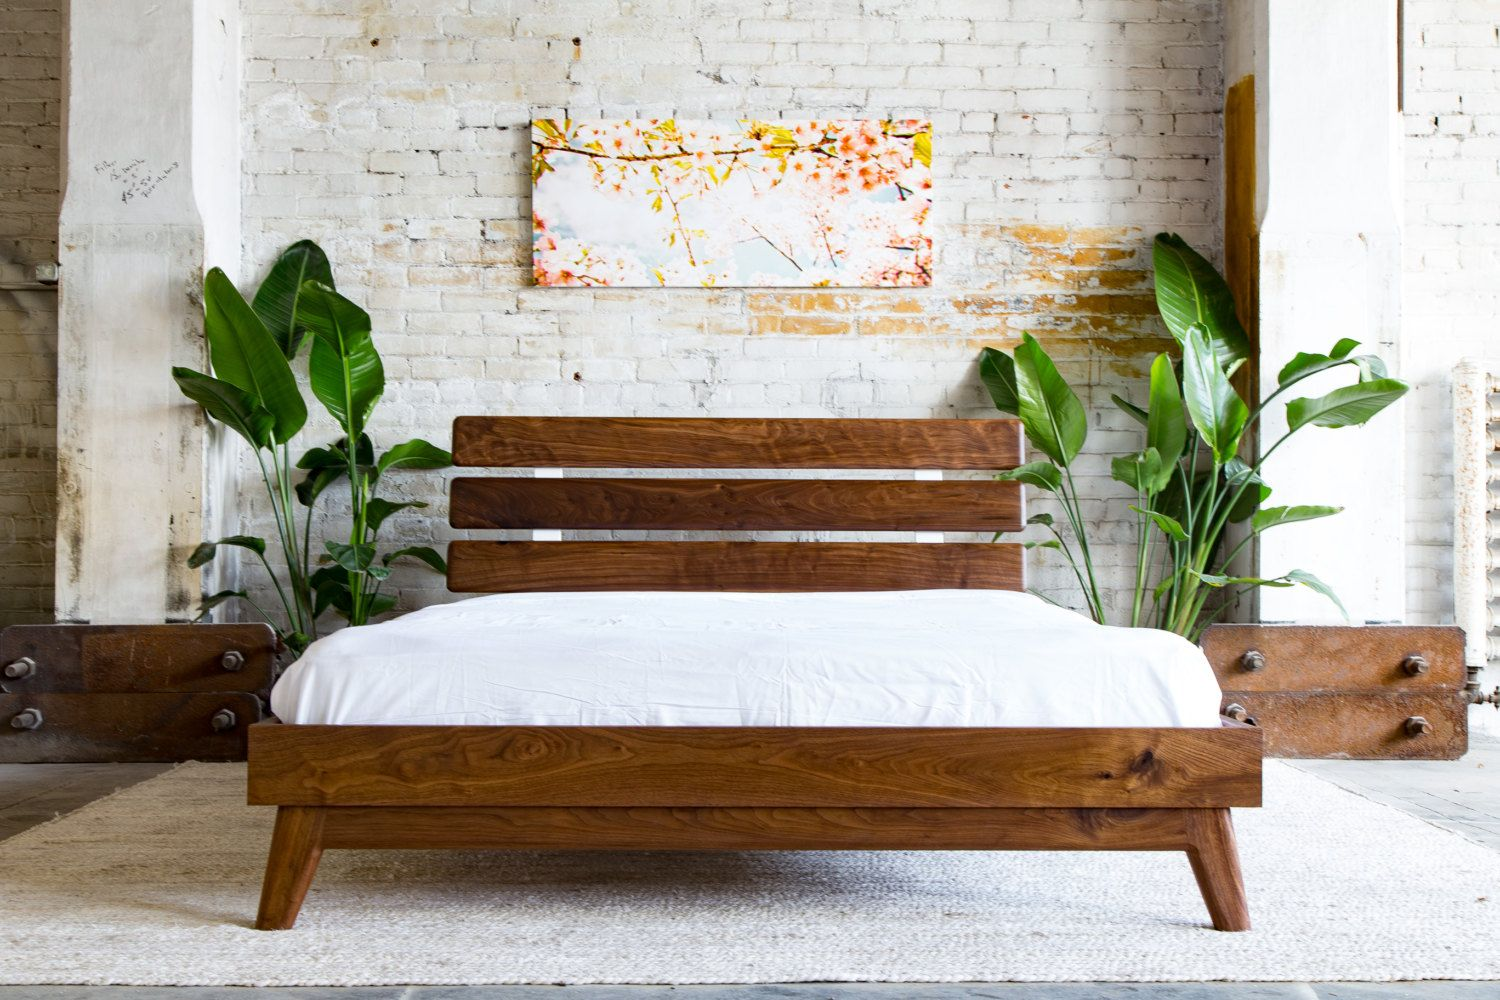 The 7 best Etsy furniture shops to check out now   Etsy furniture ...